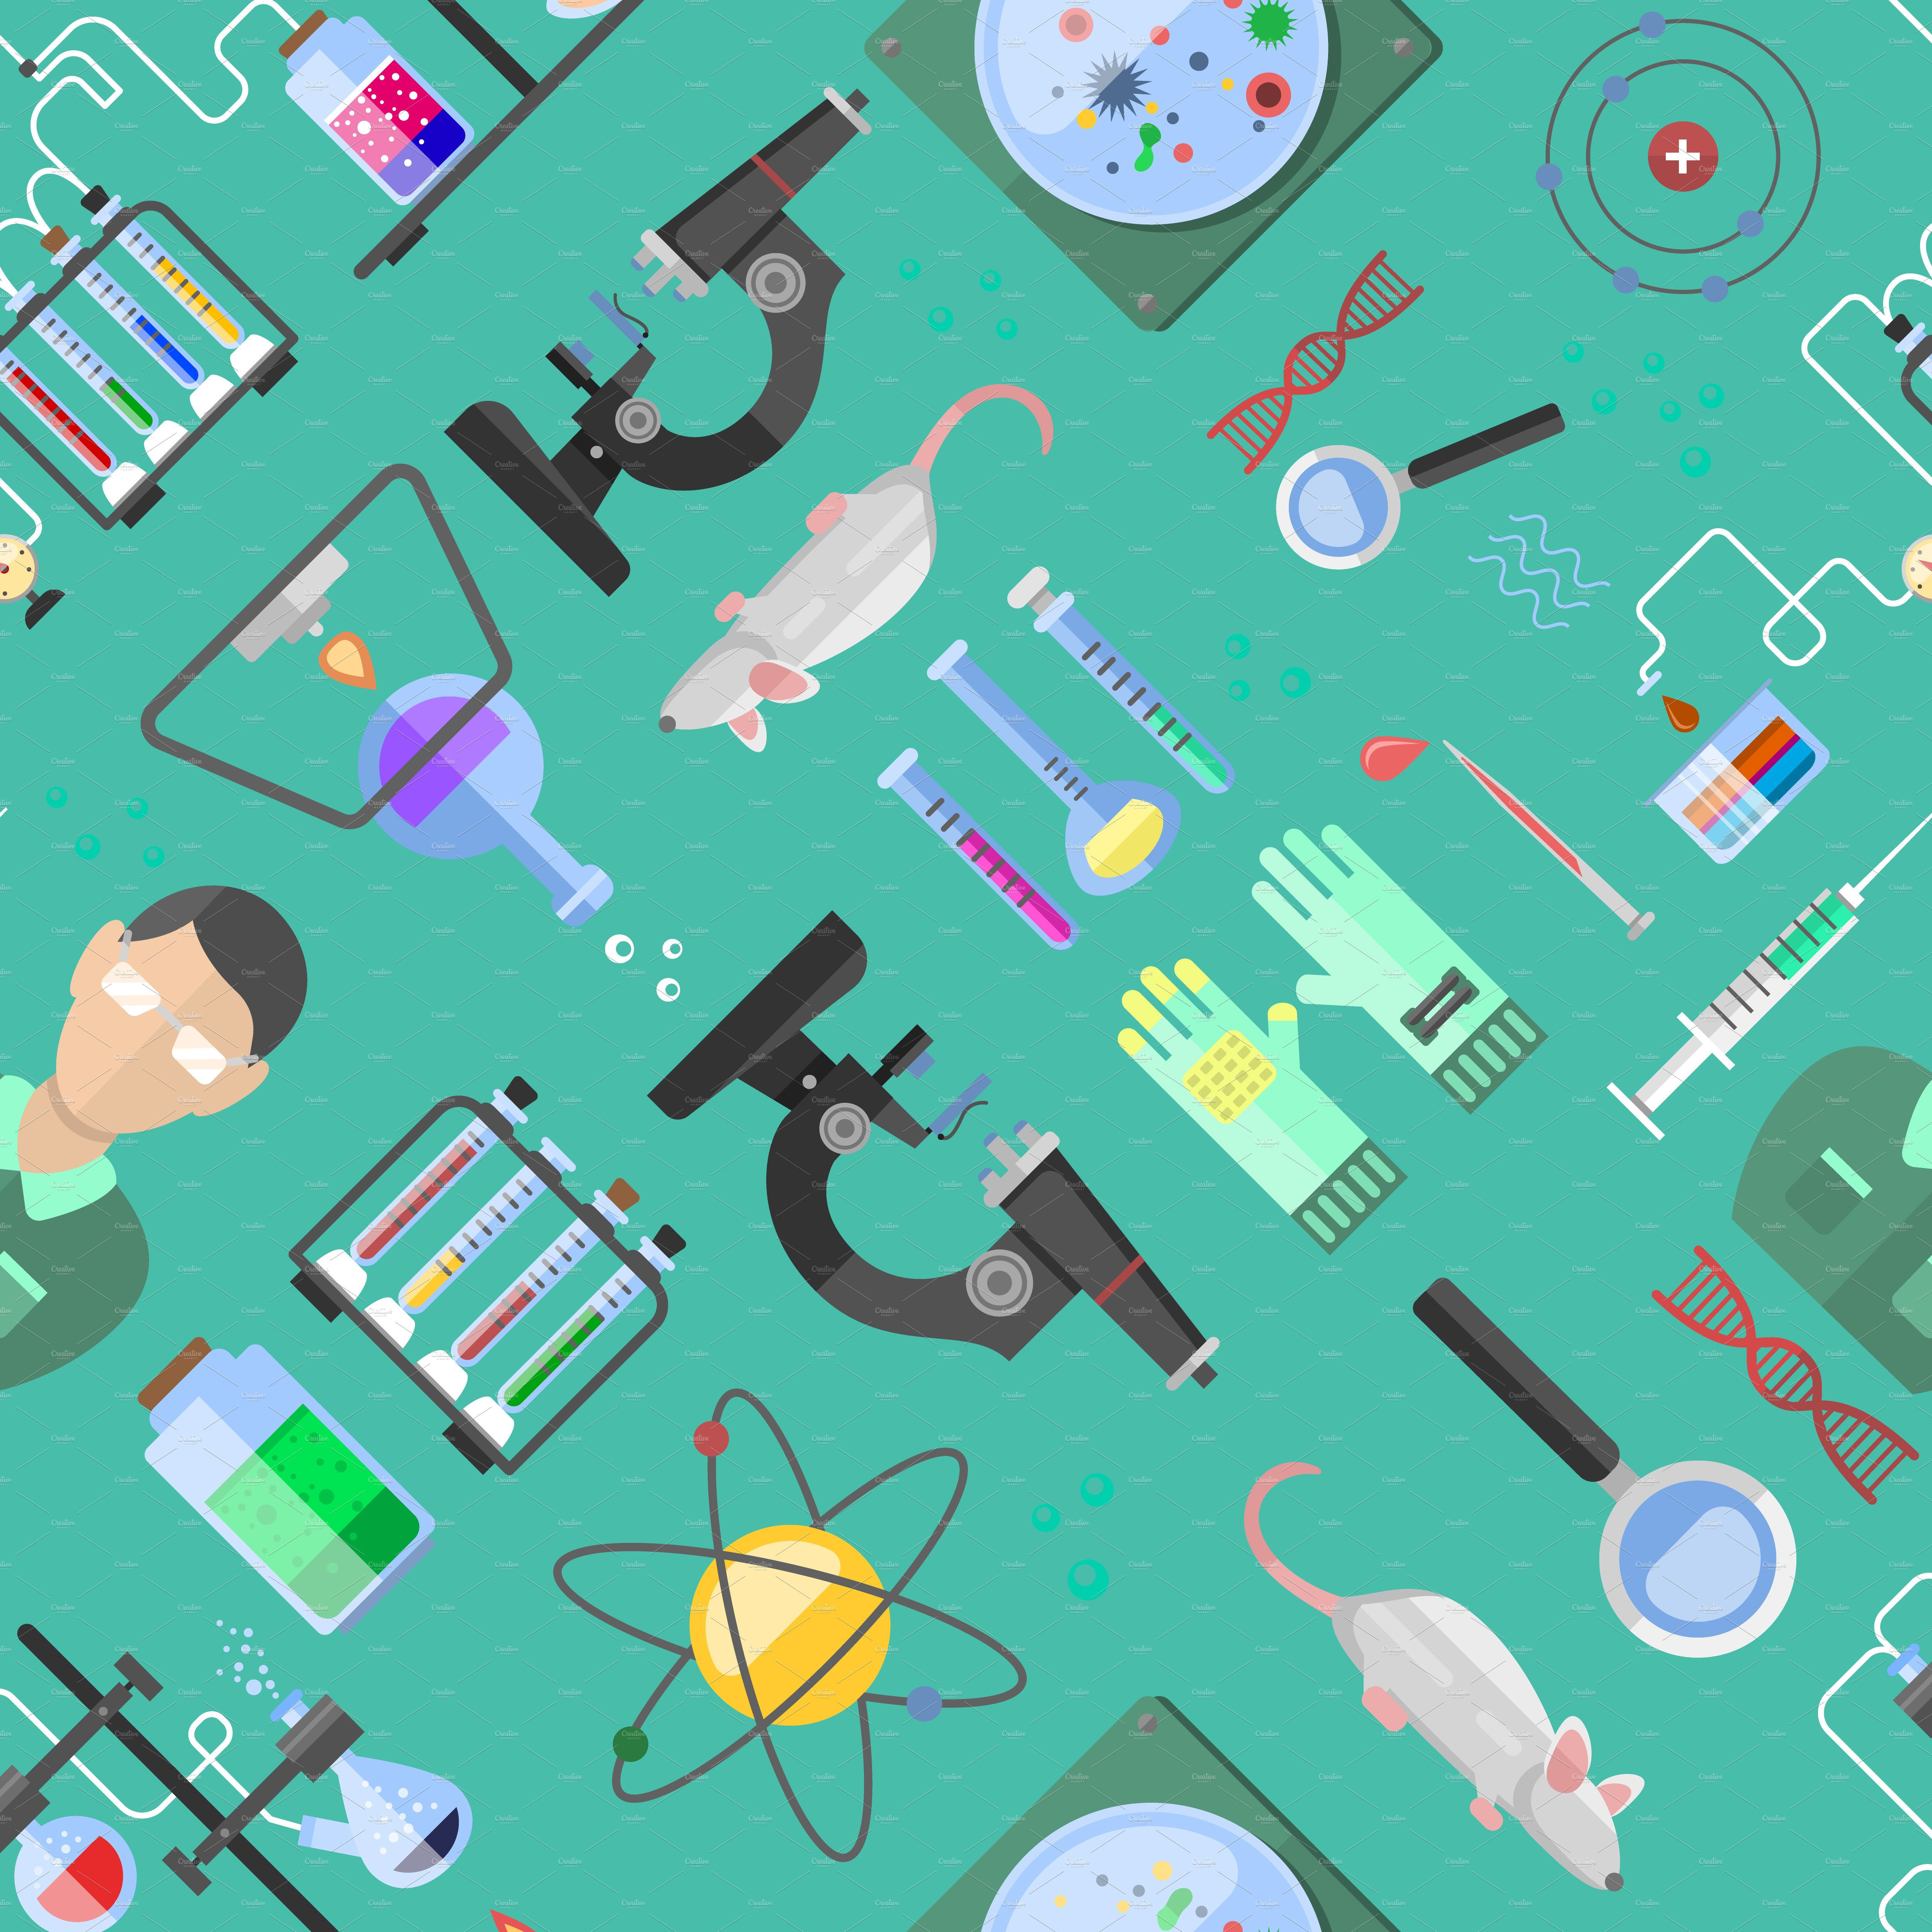 science background biology vector backgrounds laboratory research illustrations lab pattern creative chemical wallpapersafari jooinn molecular